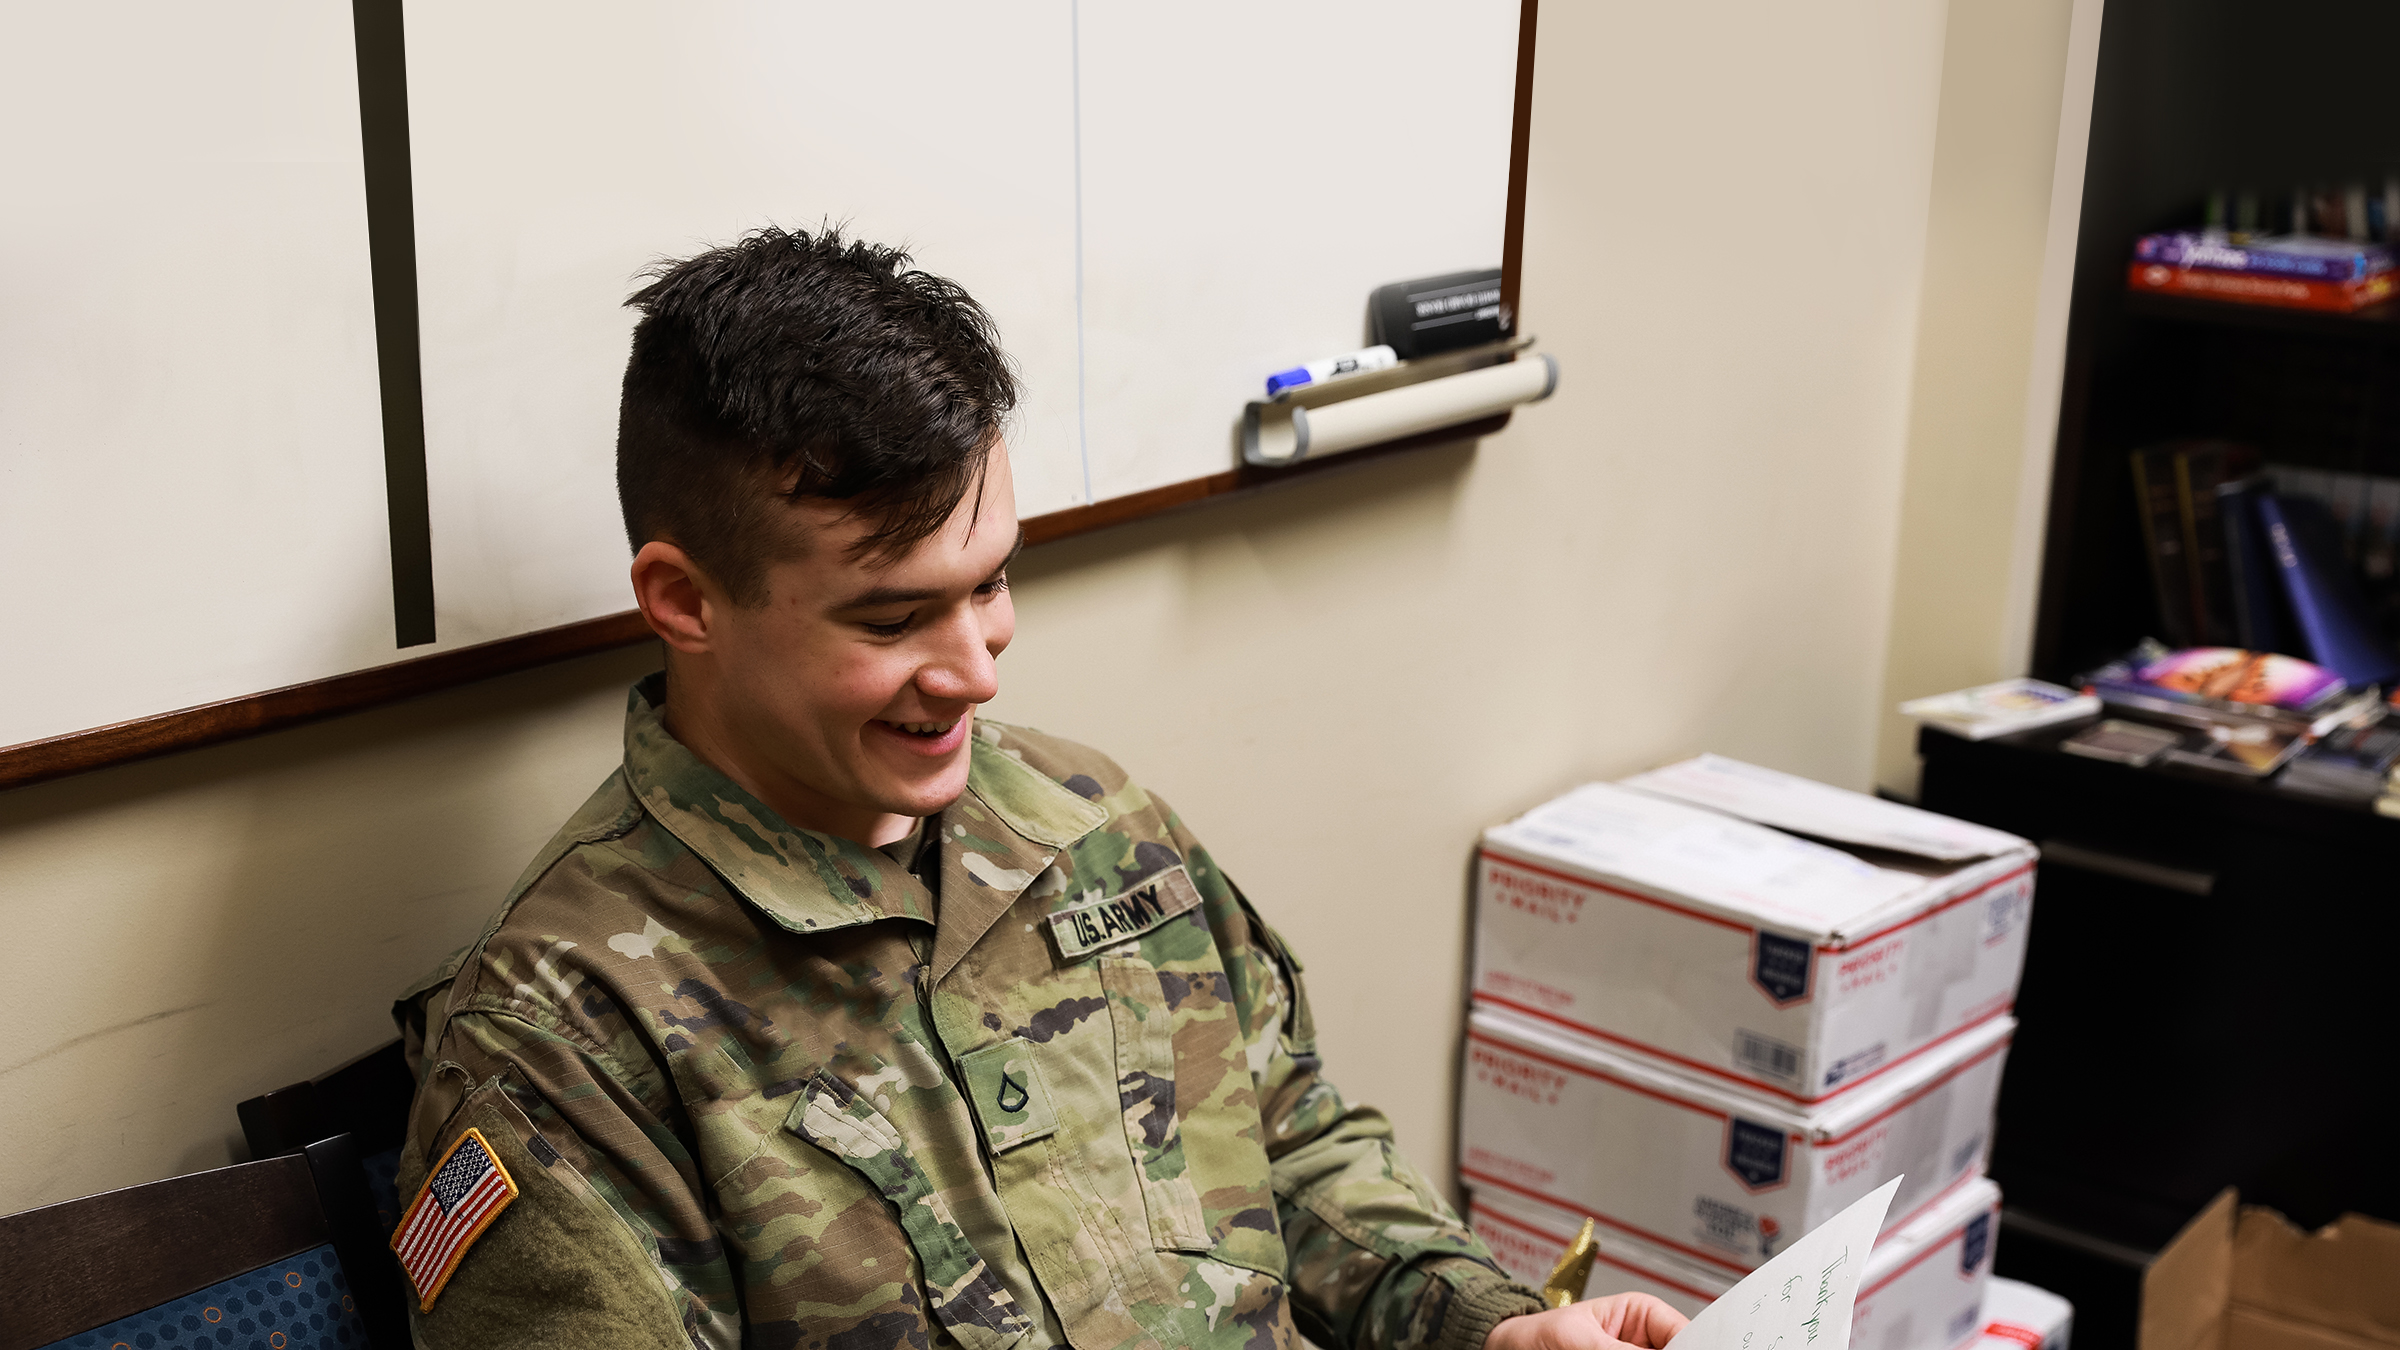 Service member receiving a care package.